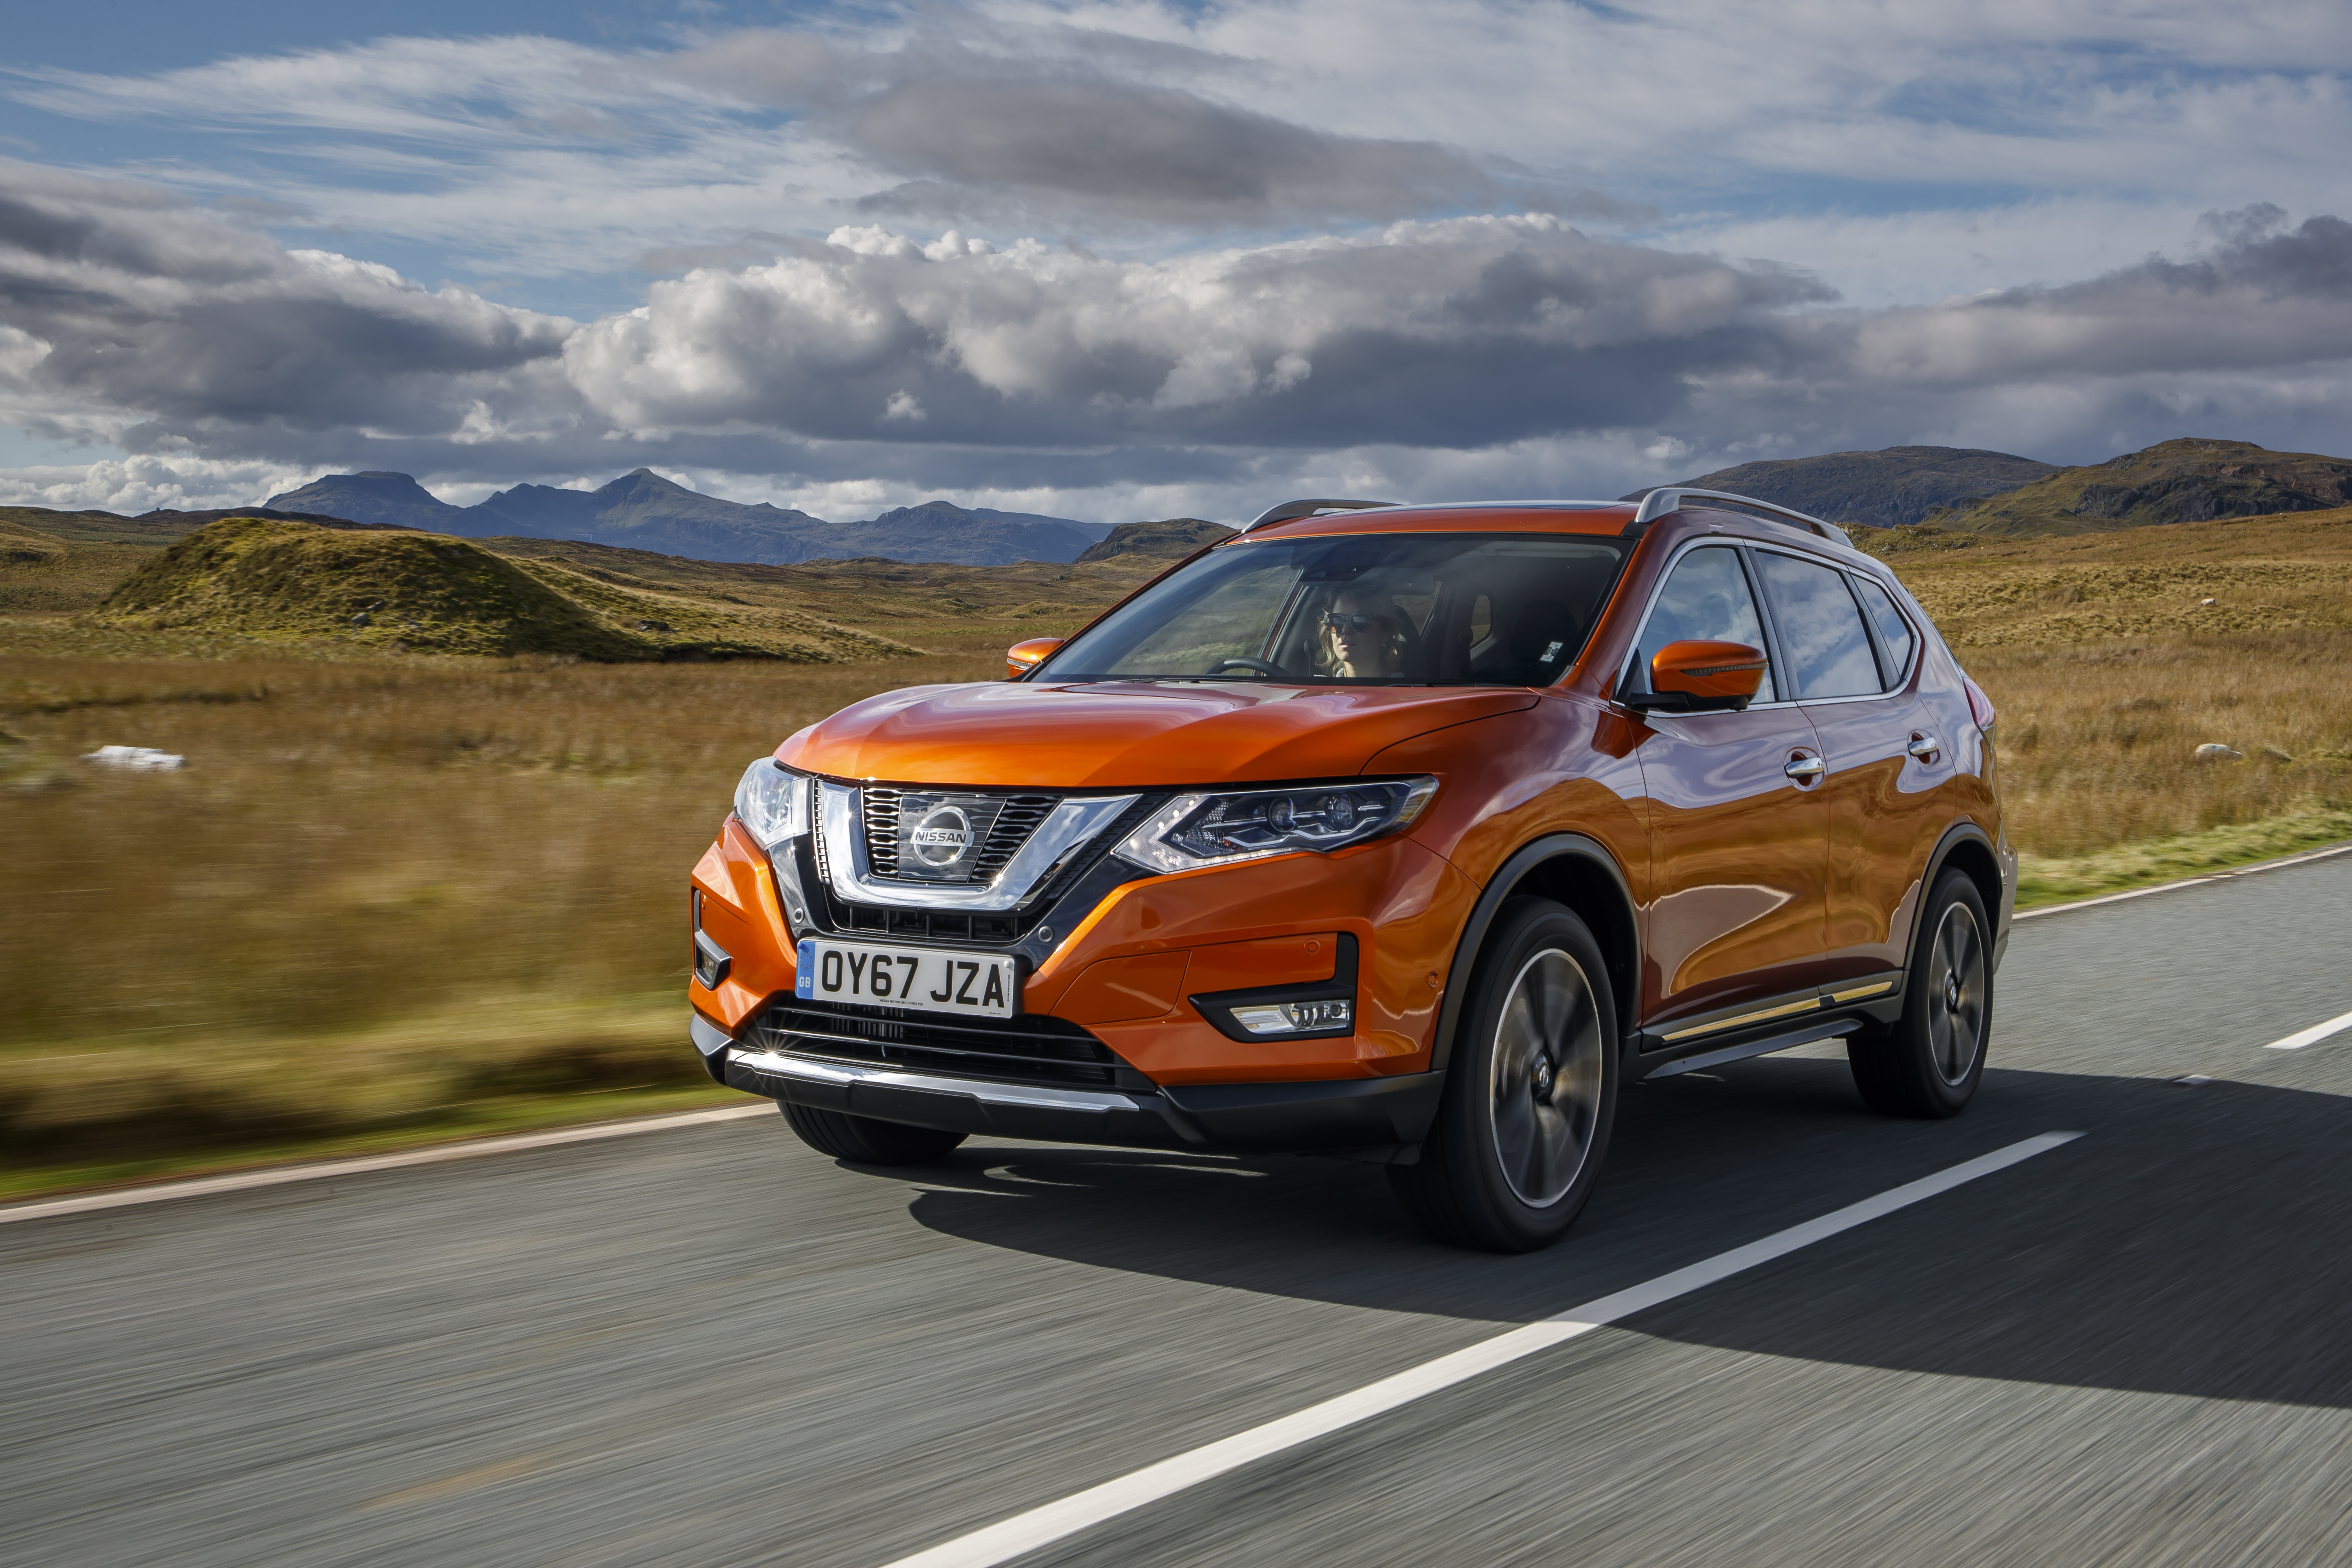 Driving the new Nissan X-Trail